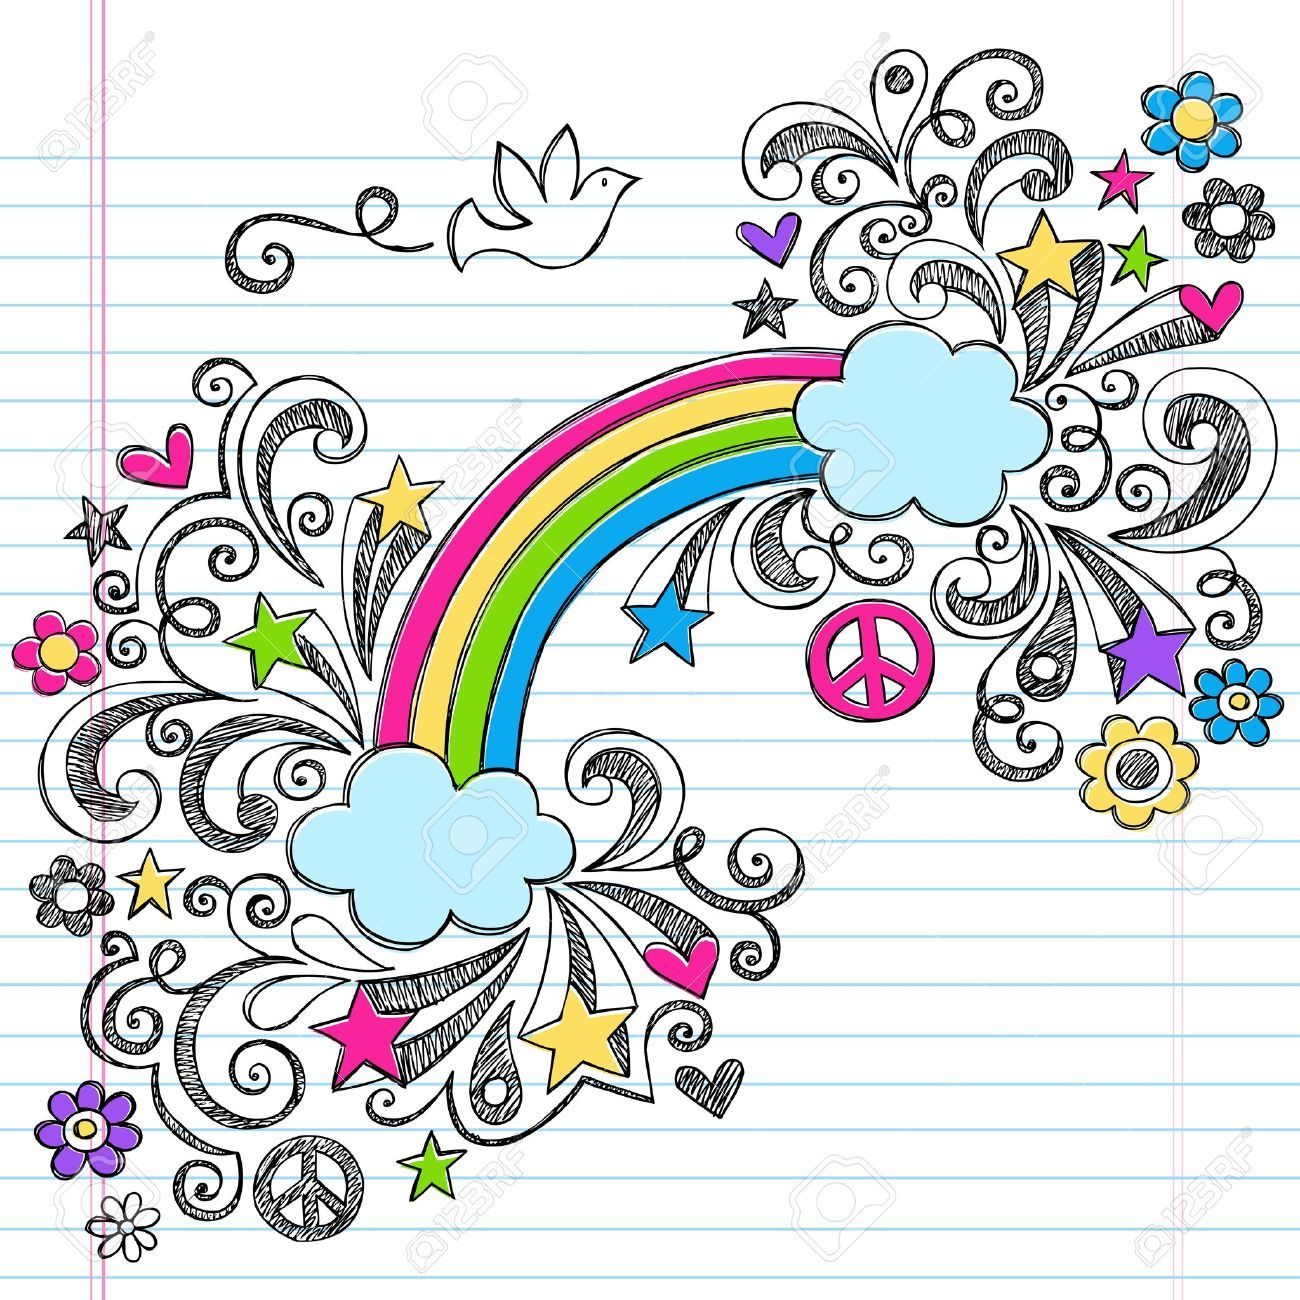 Cute doodles to draw on paper images for Cute designs for paper